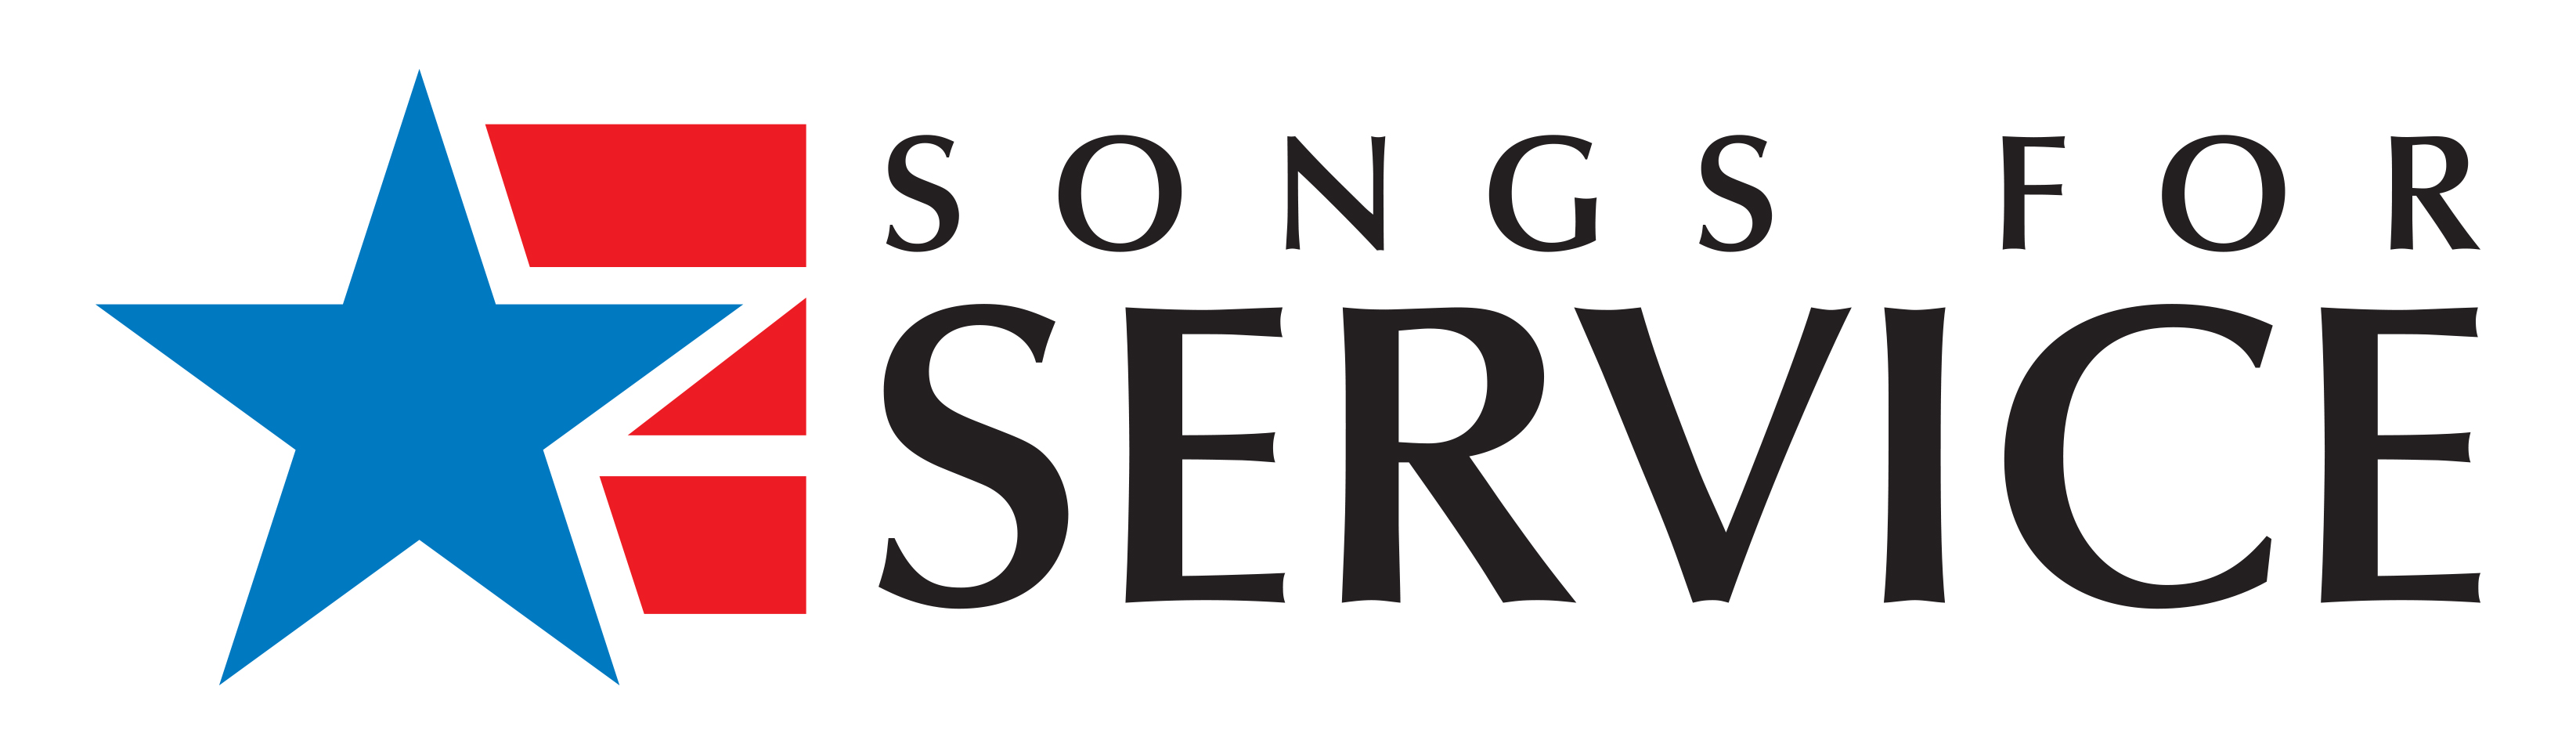 Songs for Service Logo